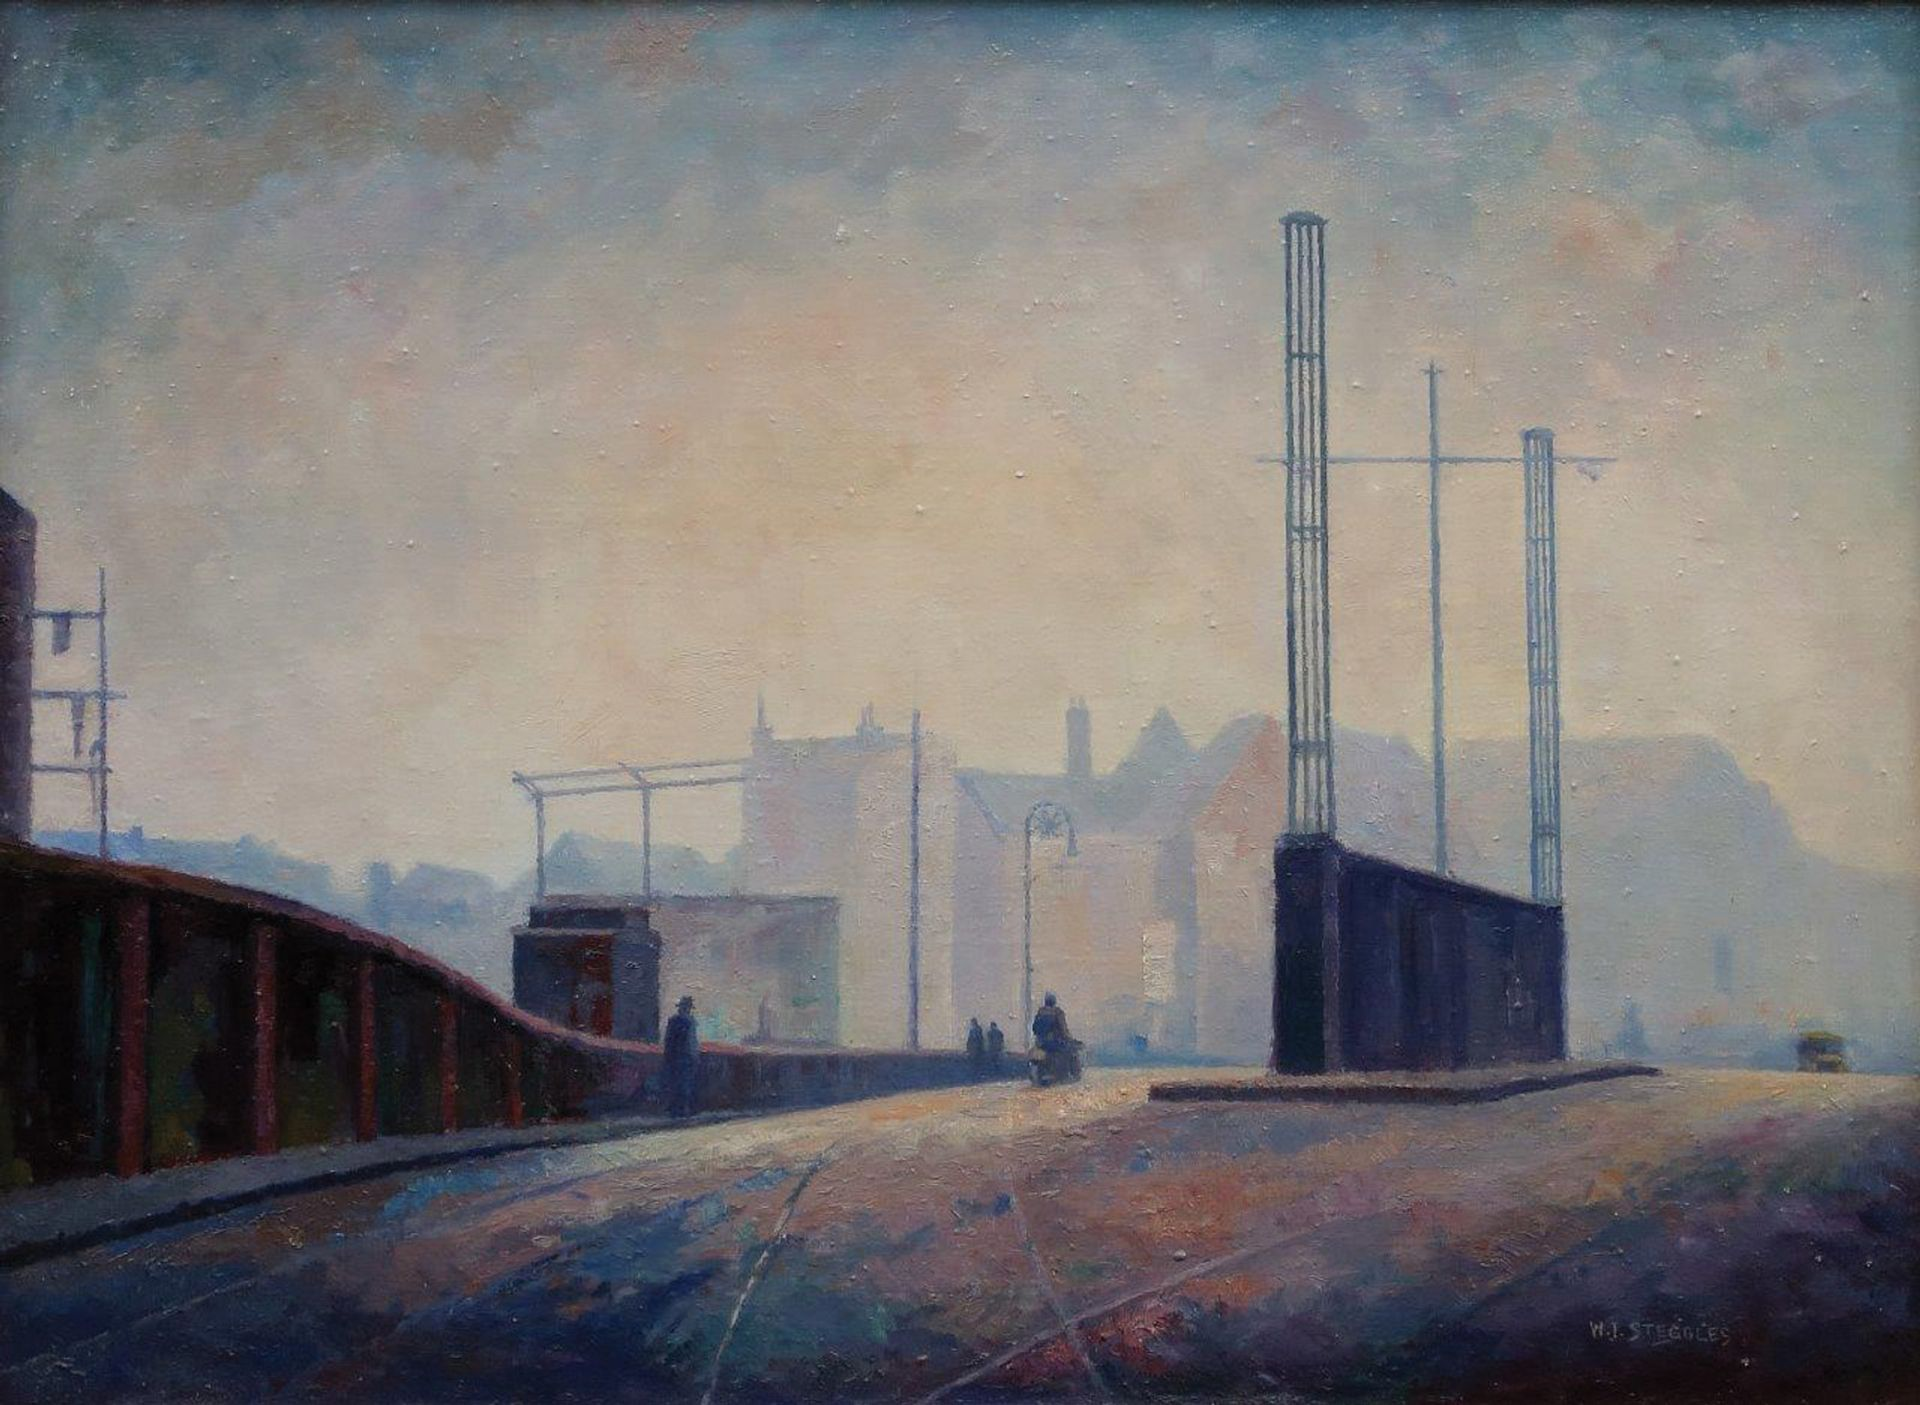 Bow Bridge by Walter Steggles, who along with his brother Harold, was a key figure of the East London Group